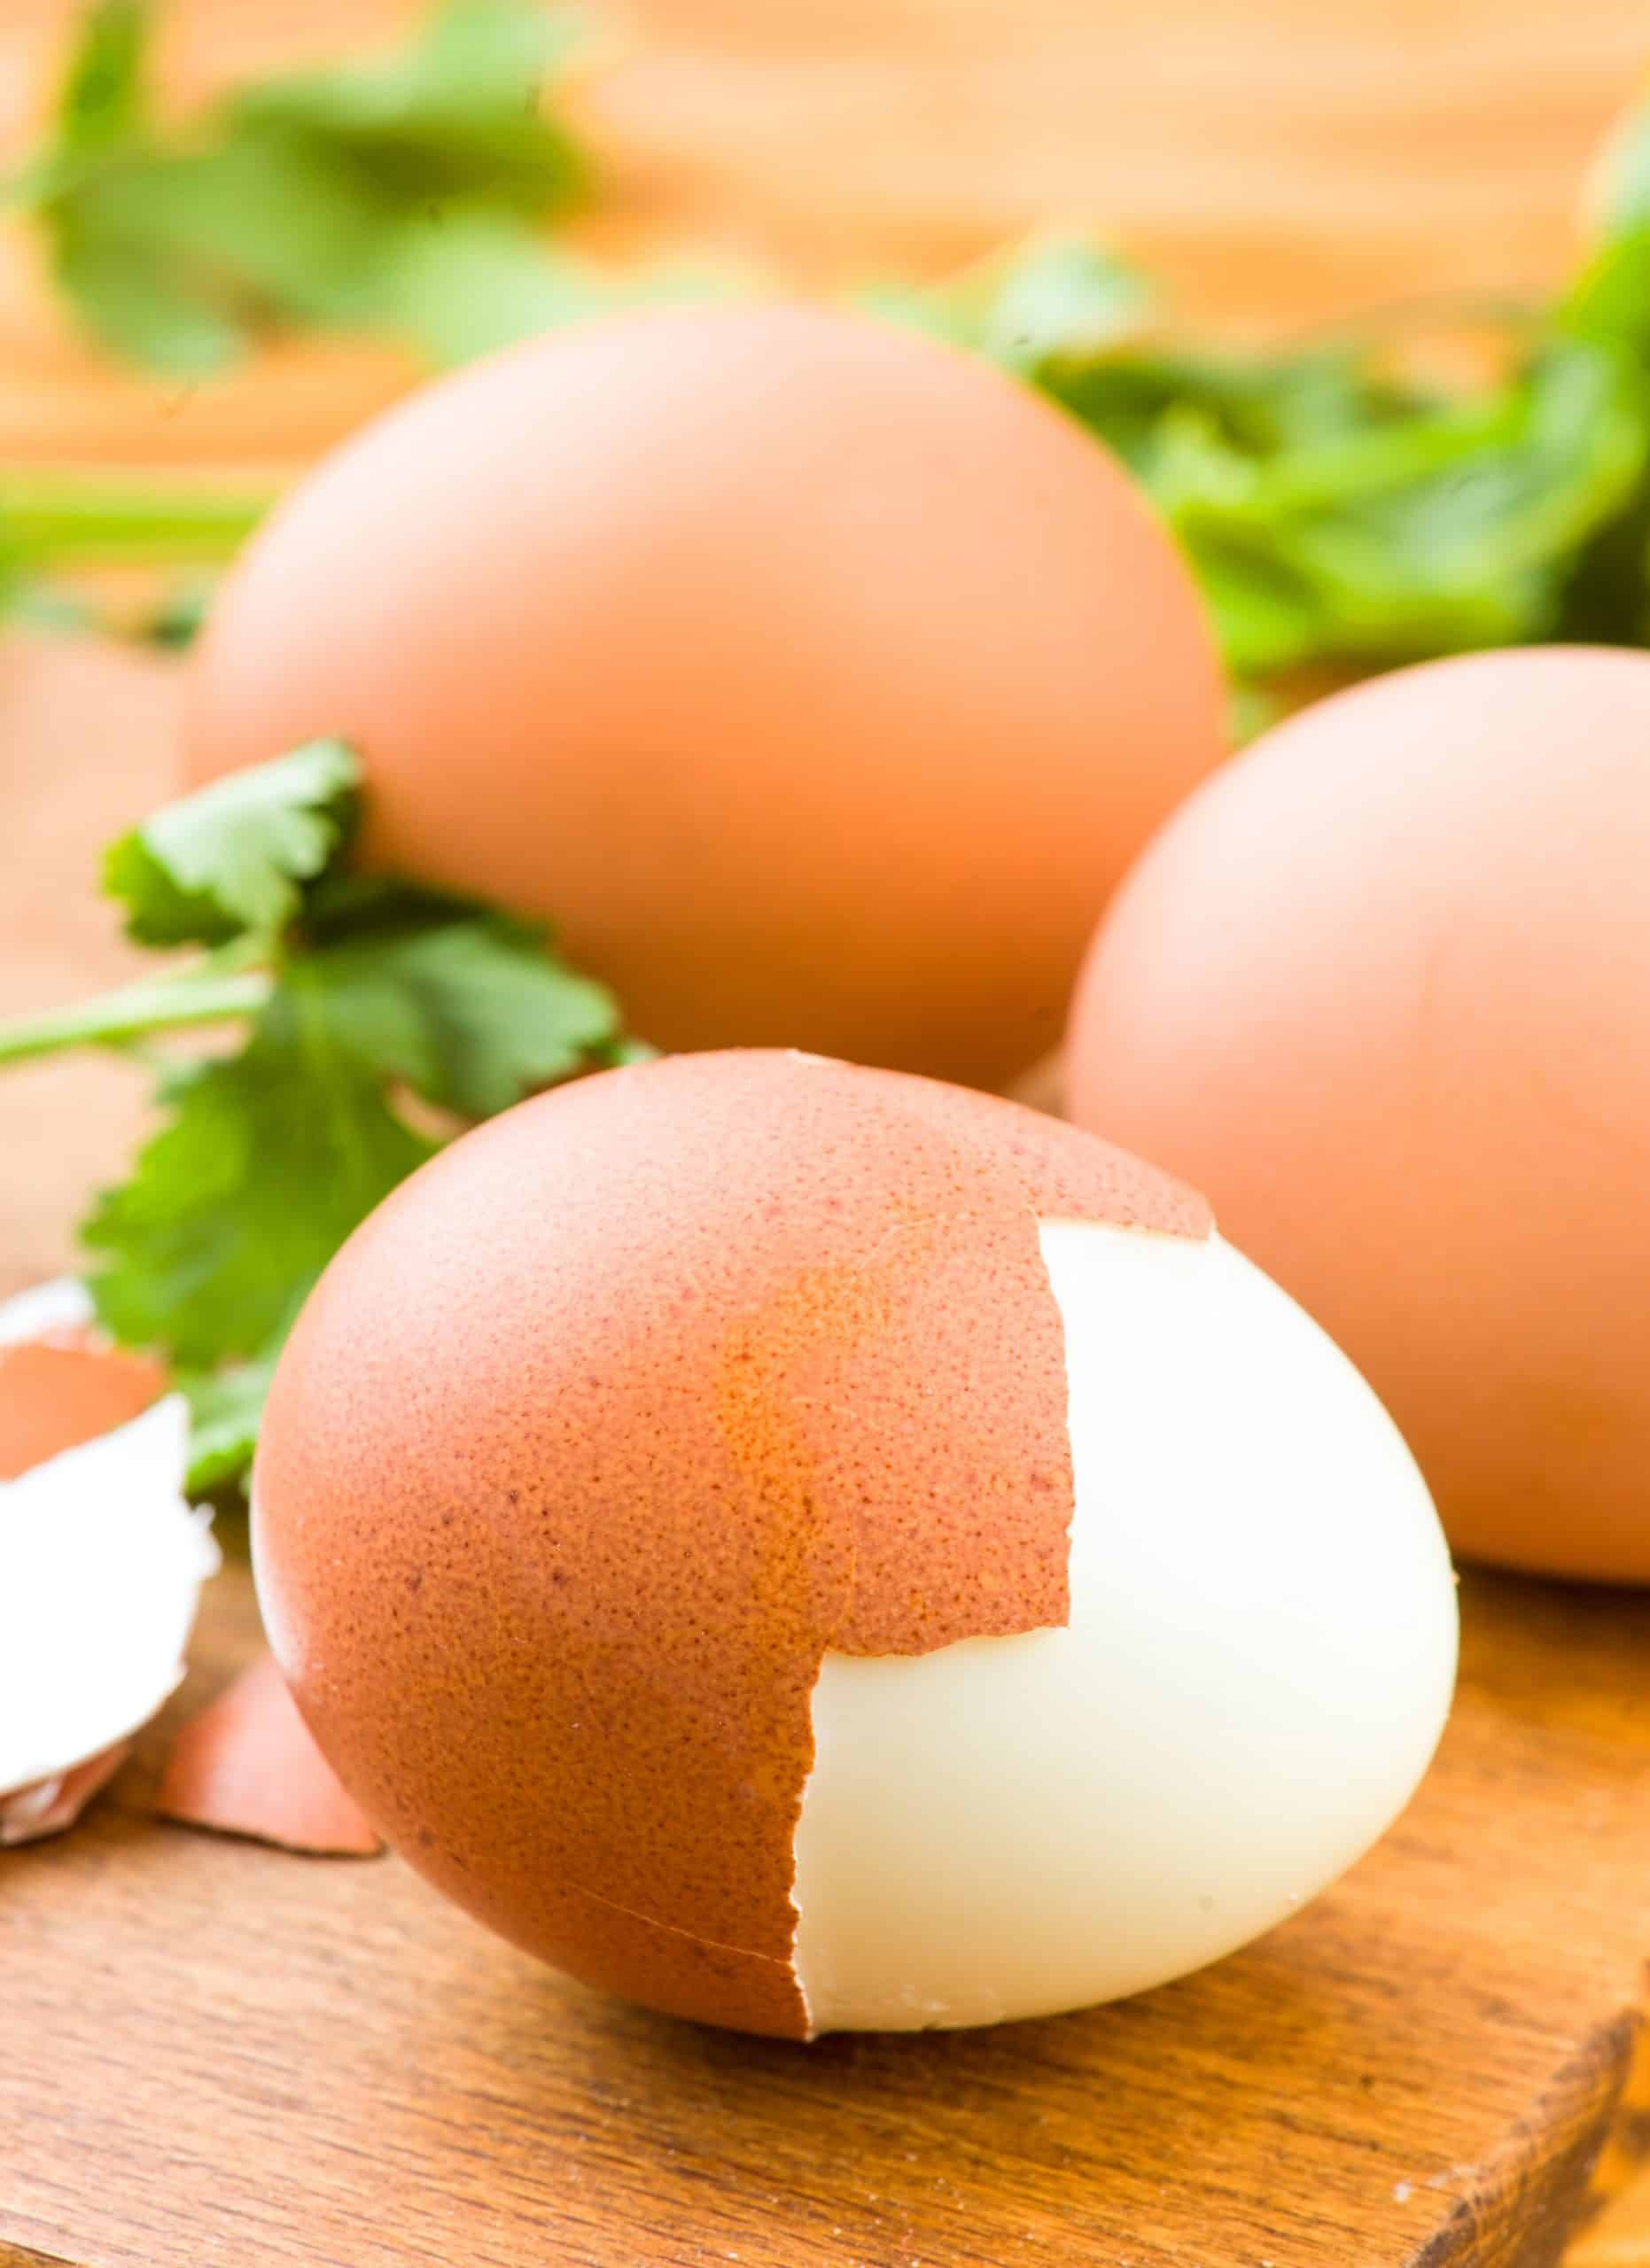 protein foods for good health